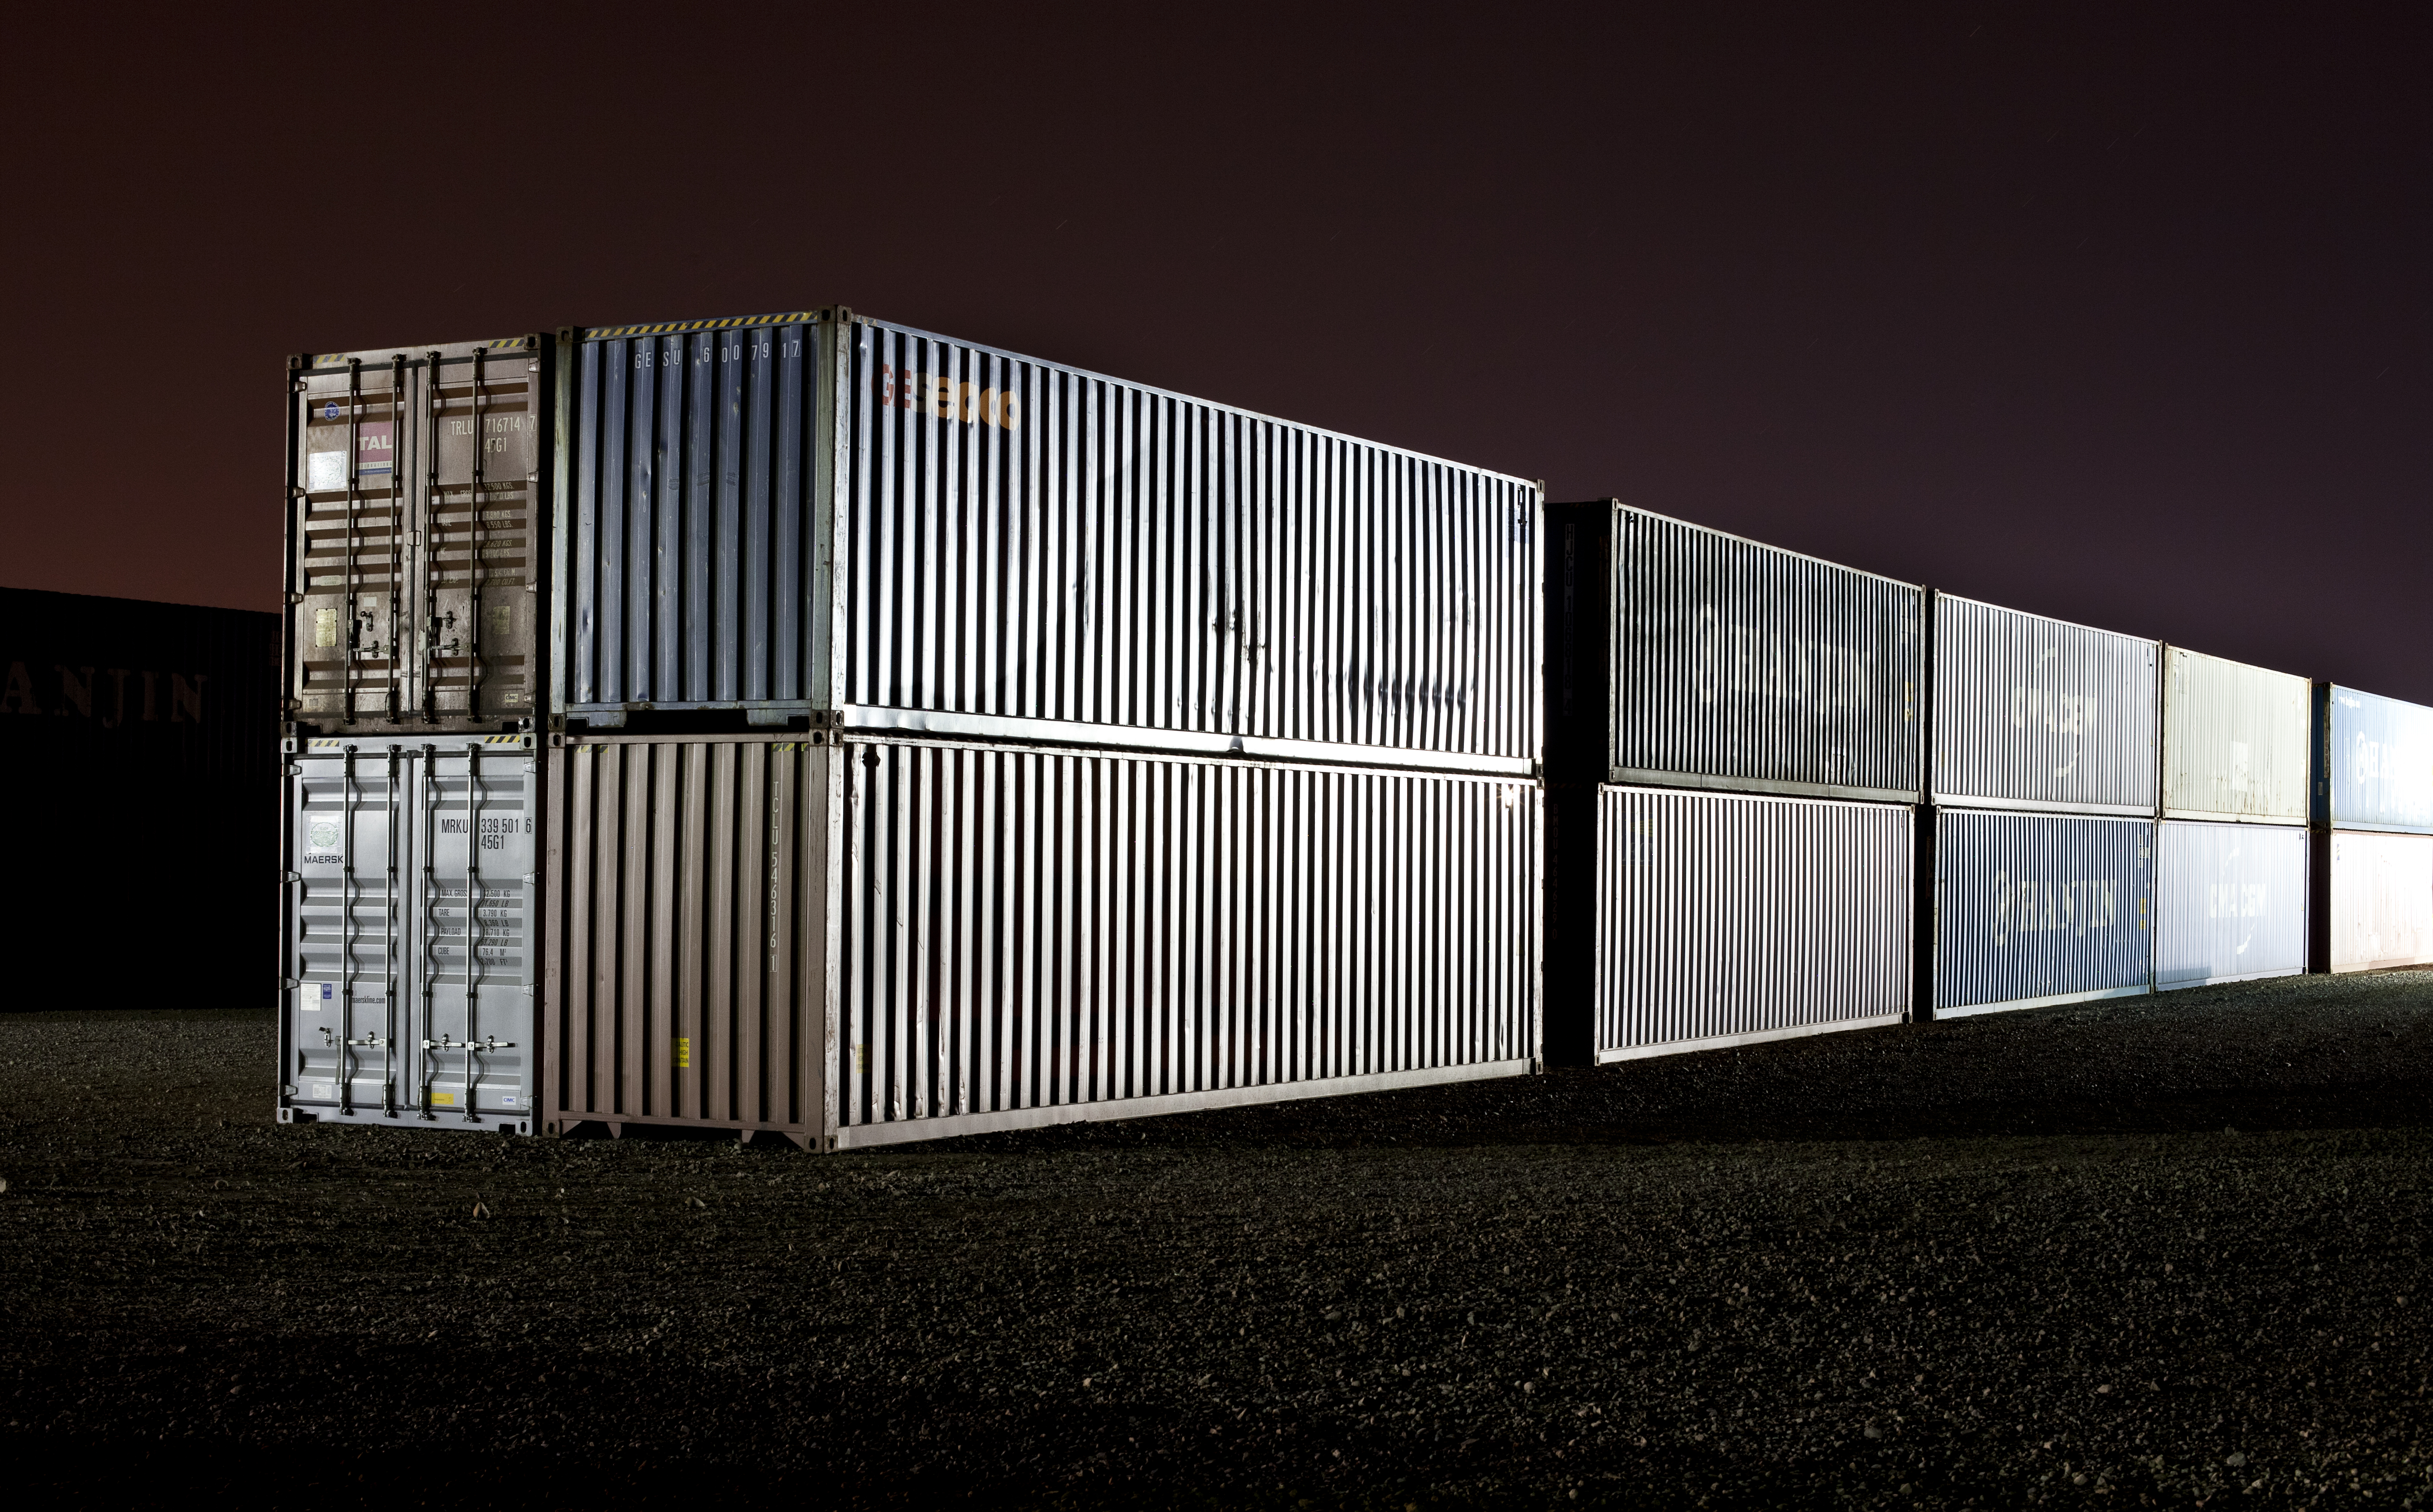 After Dark - Shipping Containers